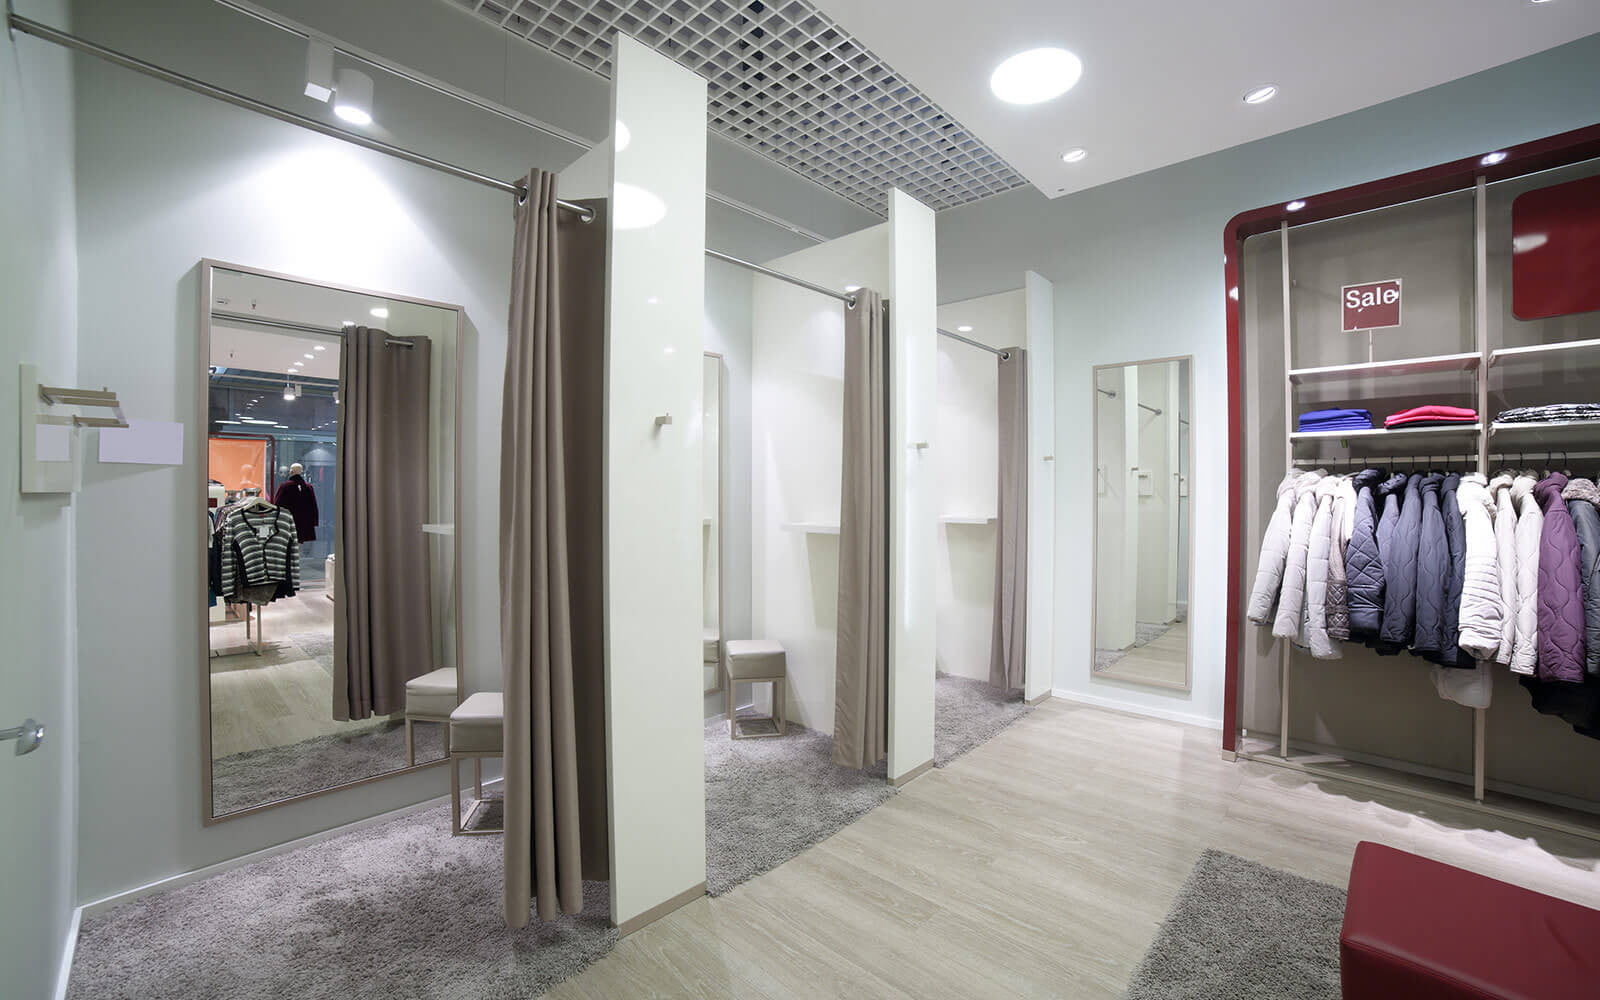 Glam Stores dressing room for trials